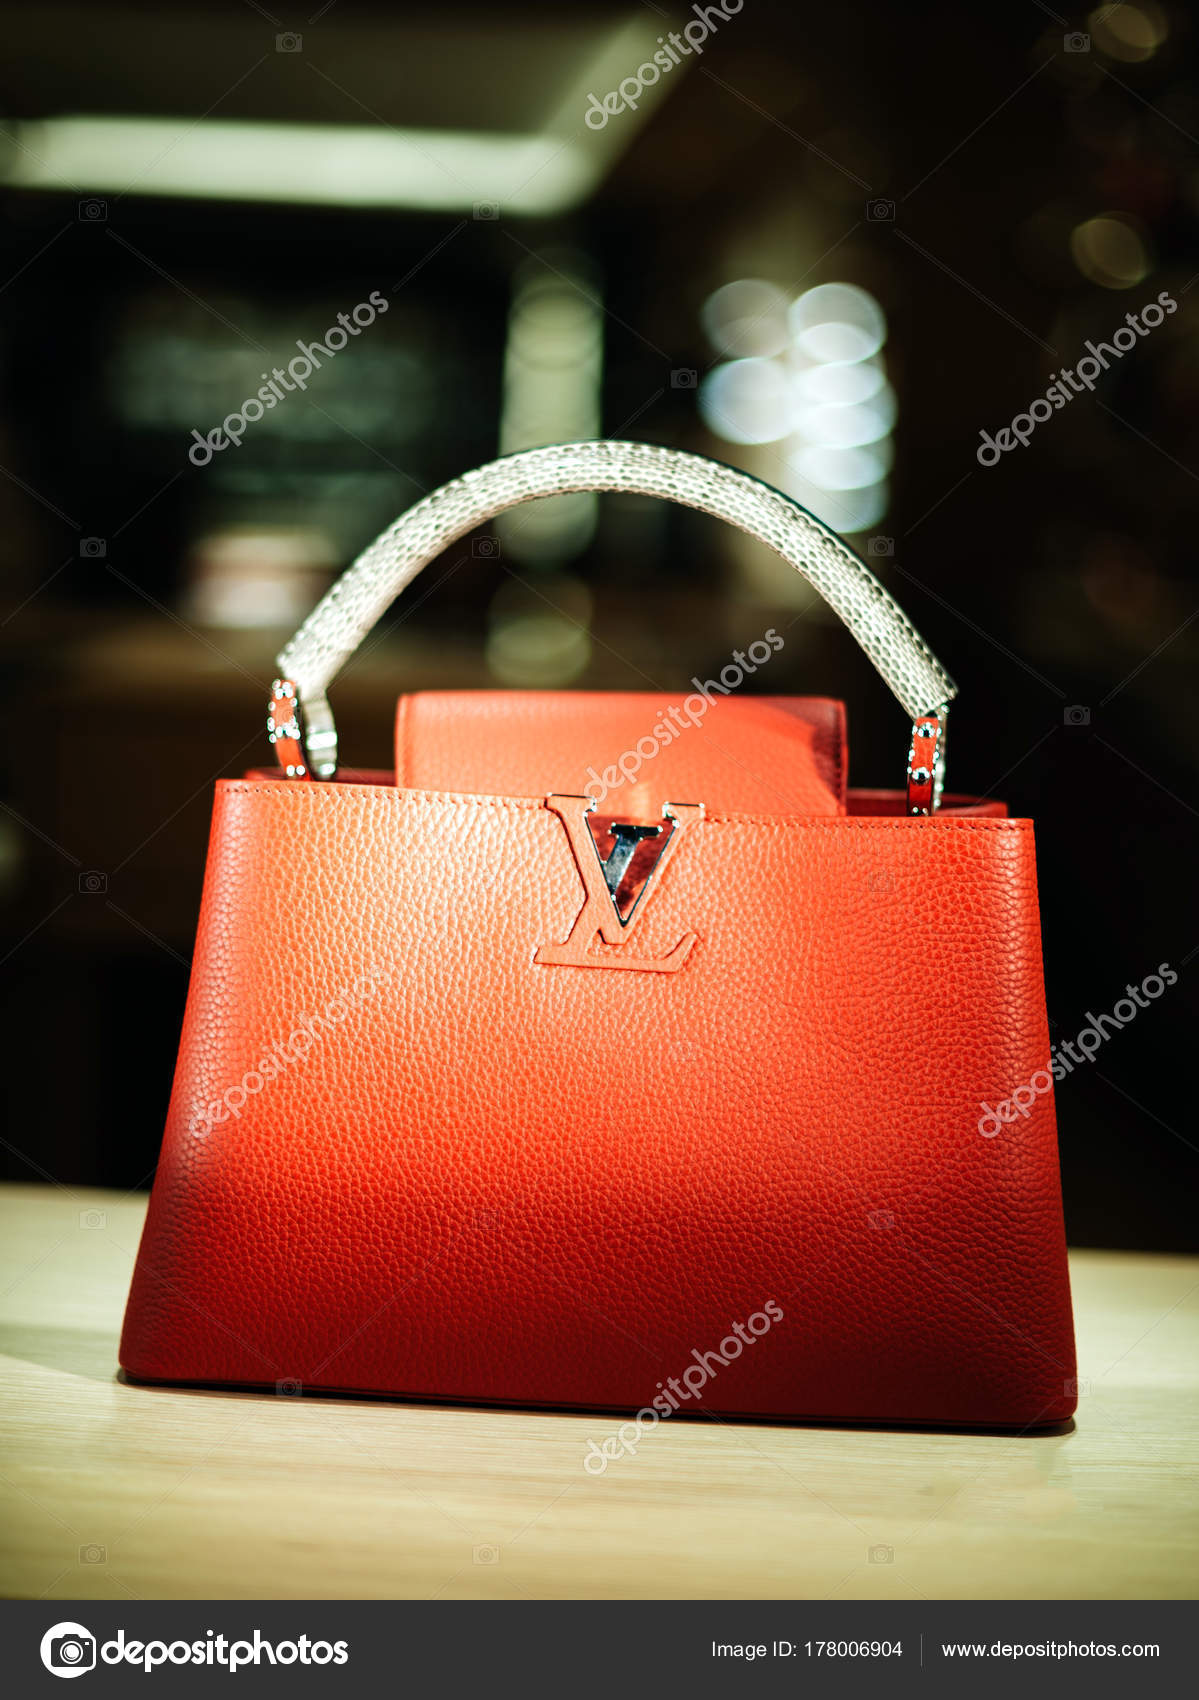 PARIS, FRANCE - December 23, 2017: Luxury Louis Vuitton handbag made from exclusive leather on sale during winter Christmas holidays in Paris, ...